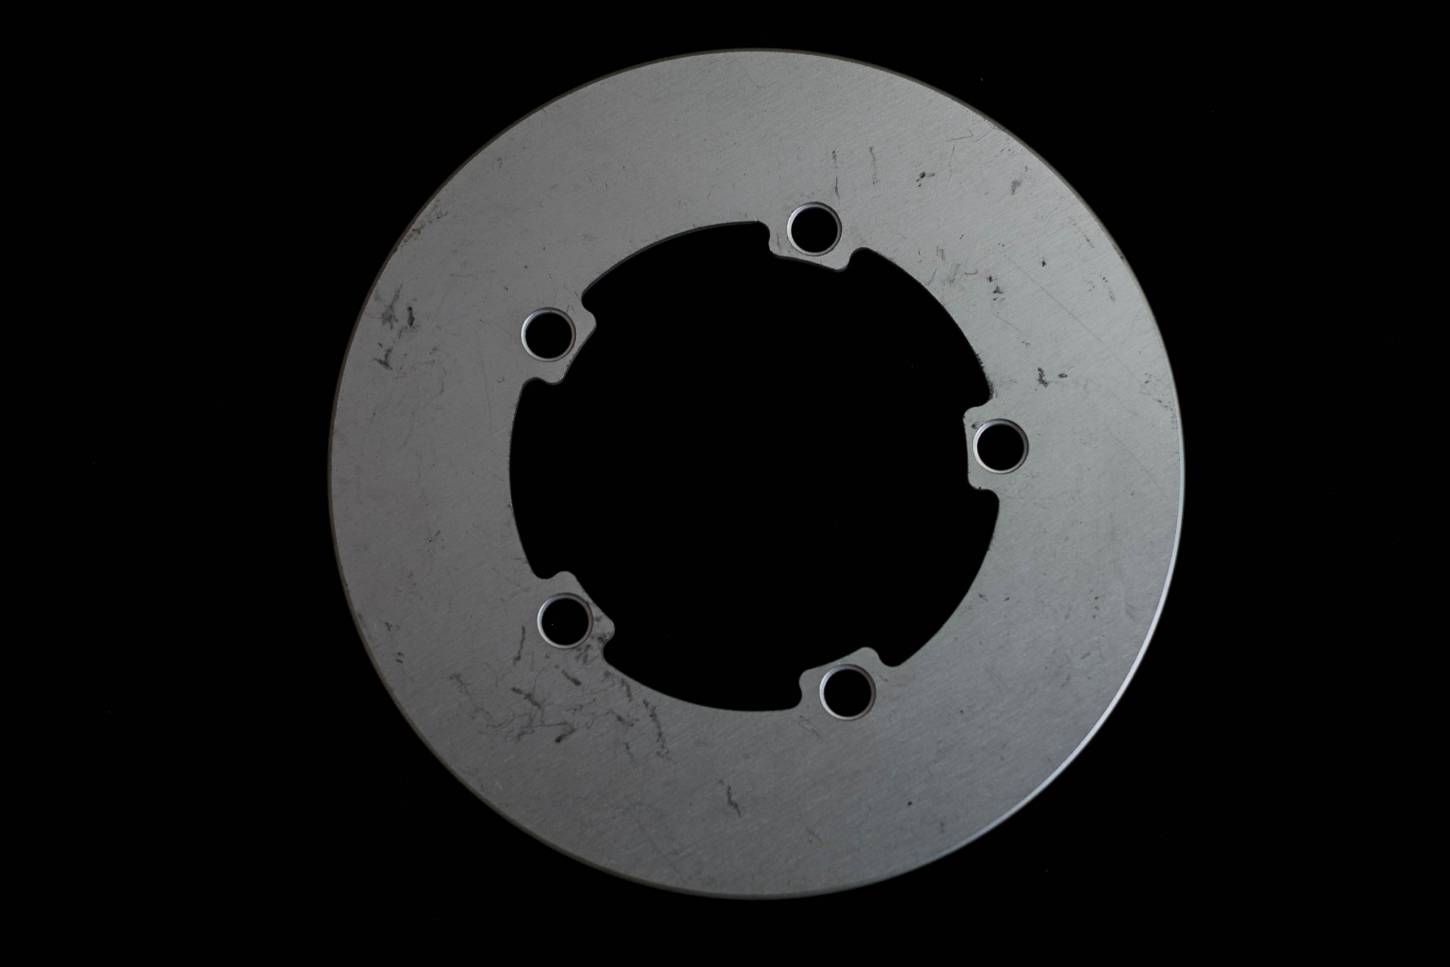 Sugino, Kettenschutzring, Chainring, Protection Ring, LK 110, Chainring Guard